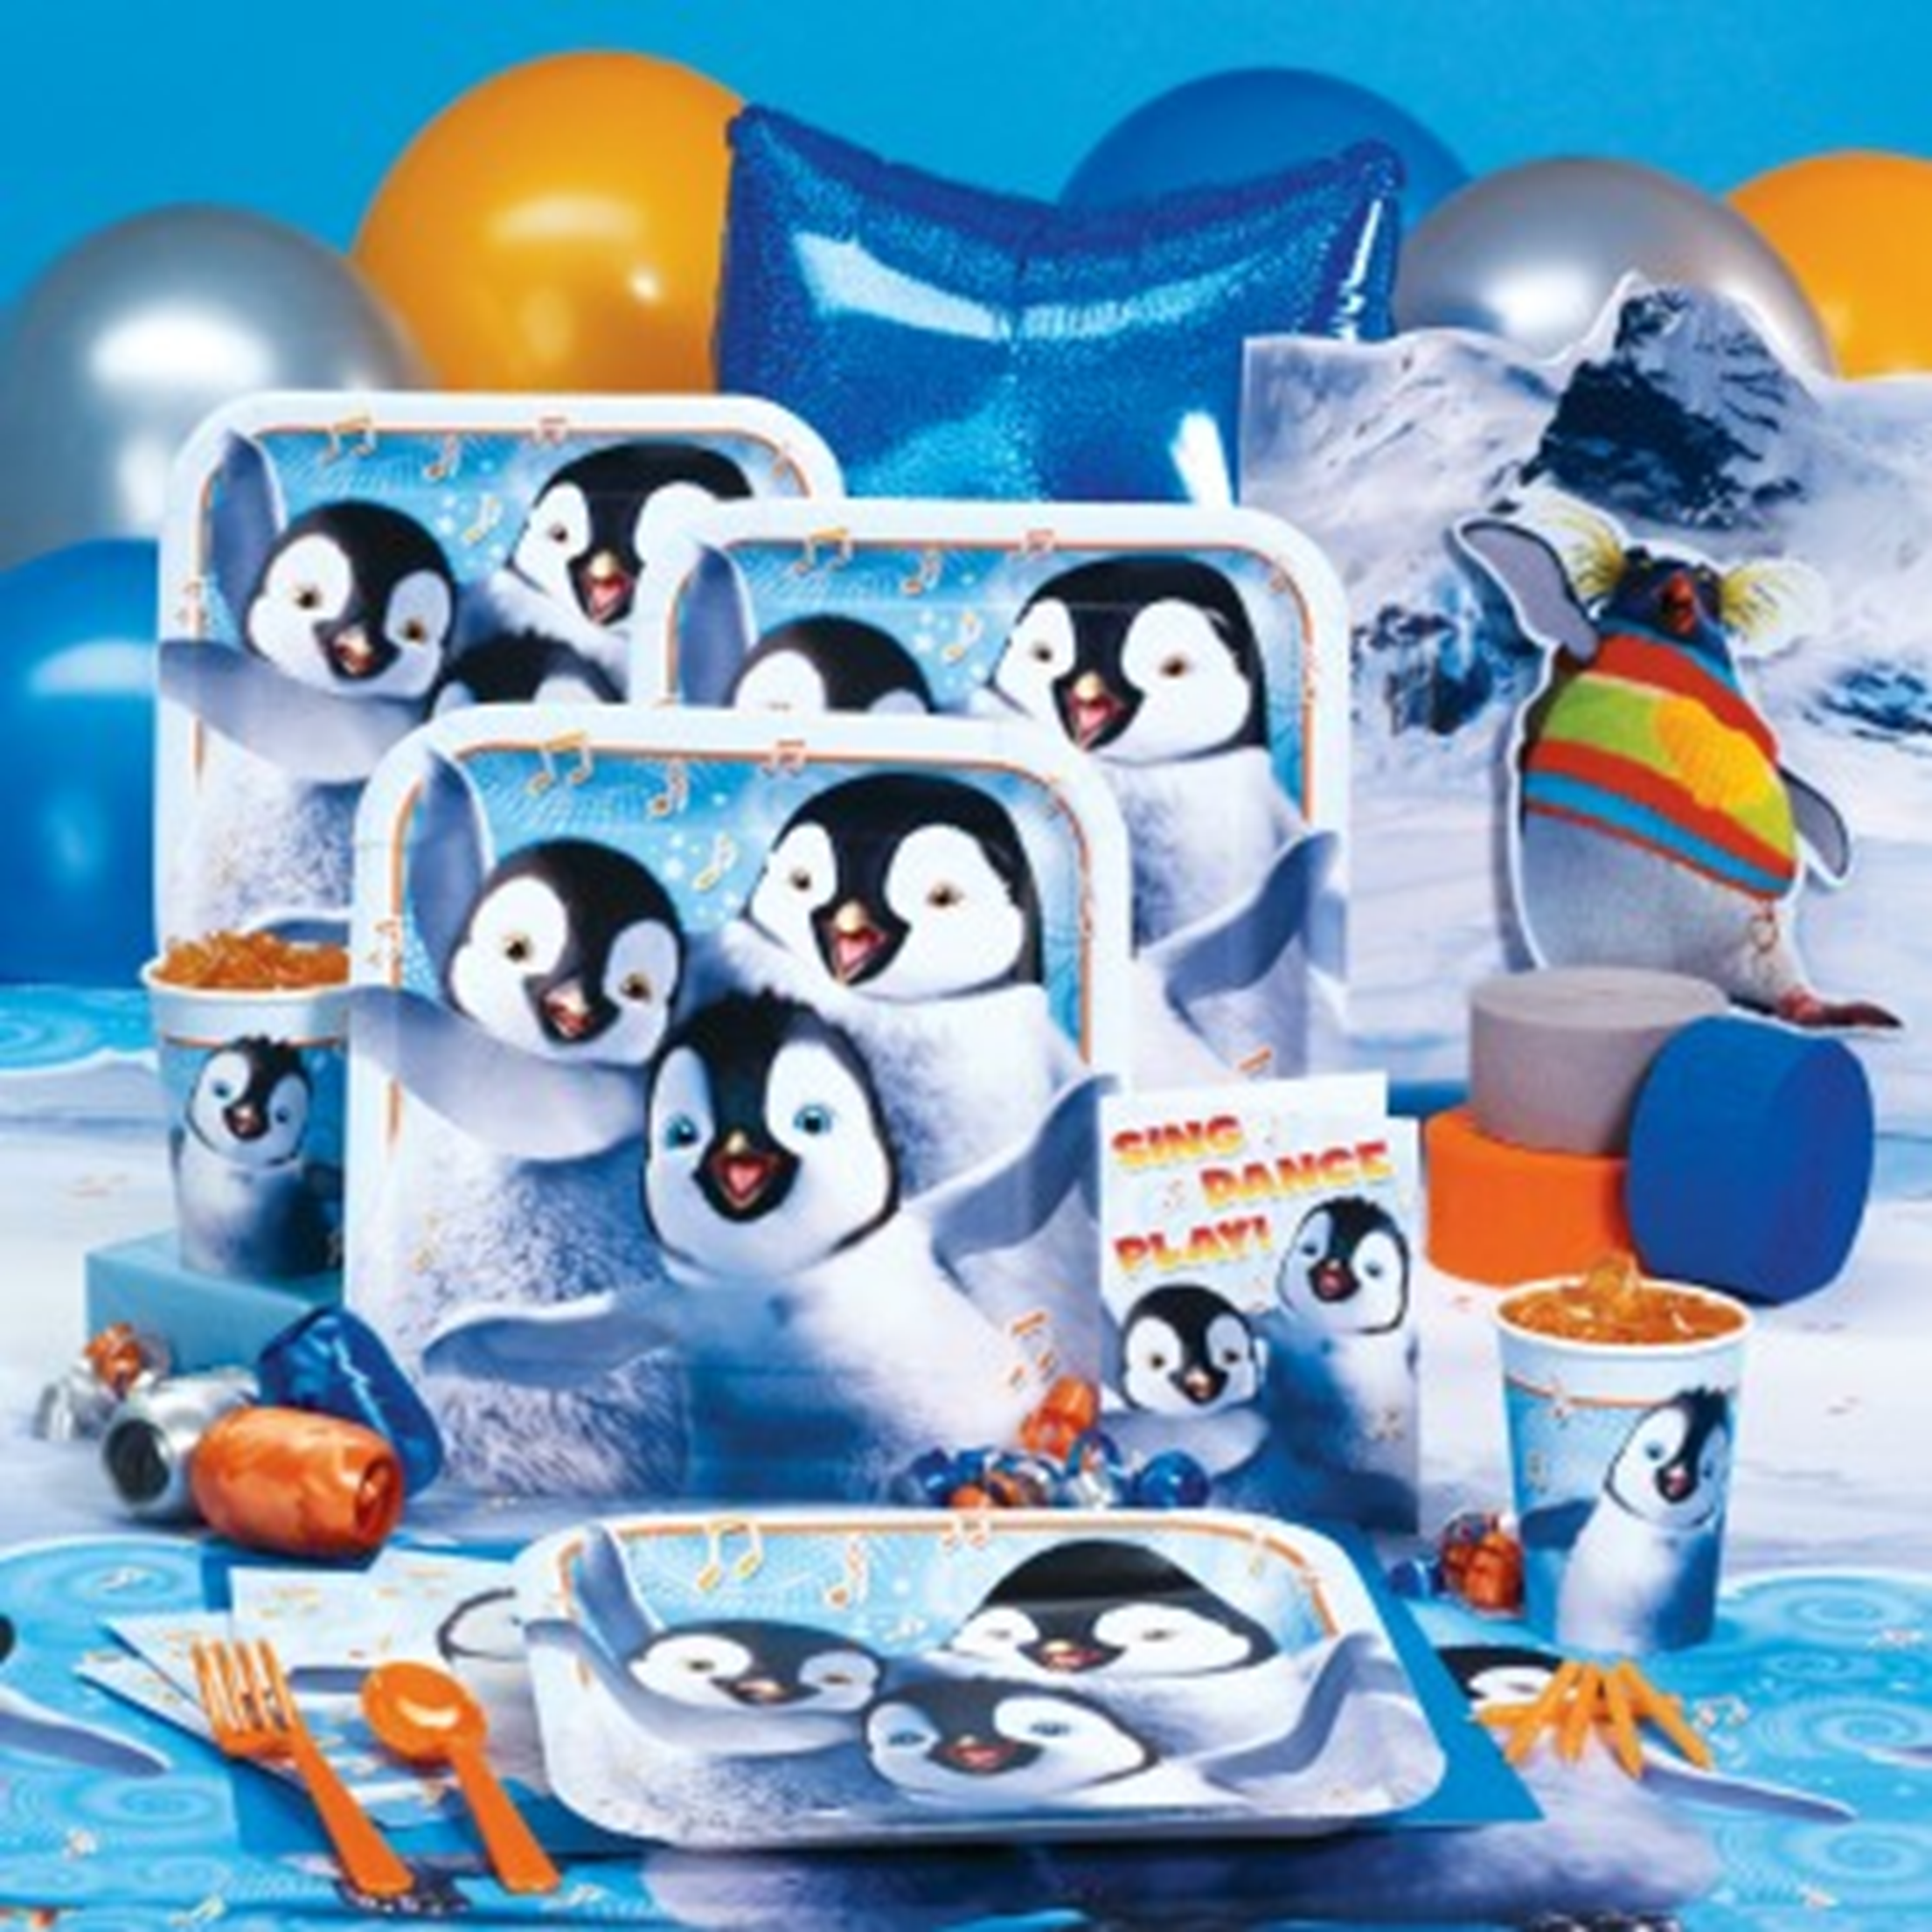 Happy Feet 2 Images Party Decorations HD Wallpaper And Background Photos